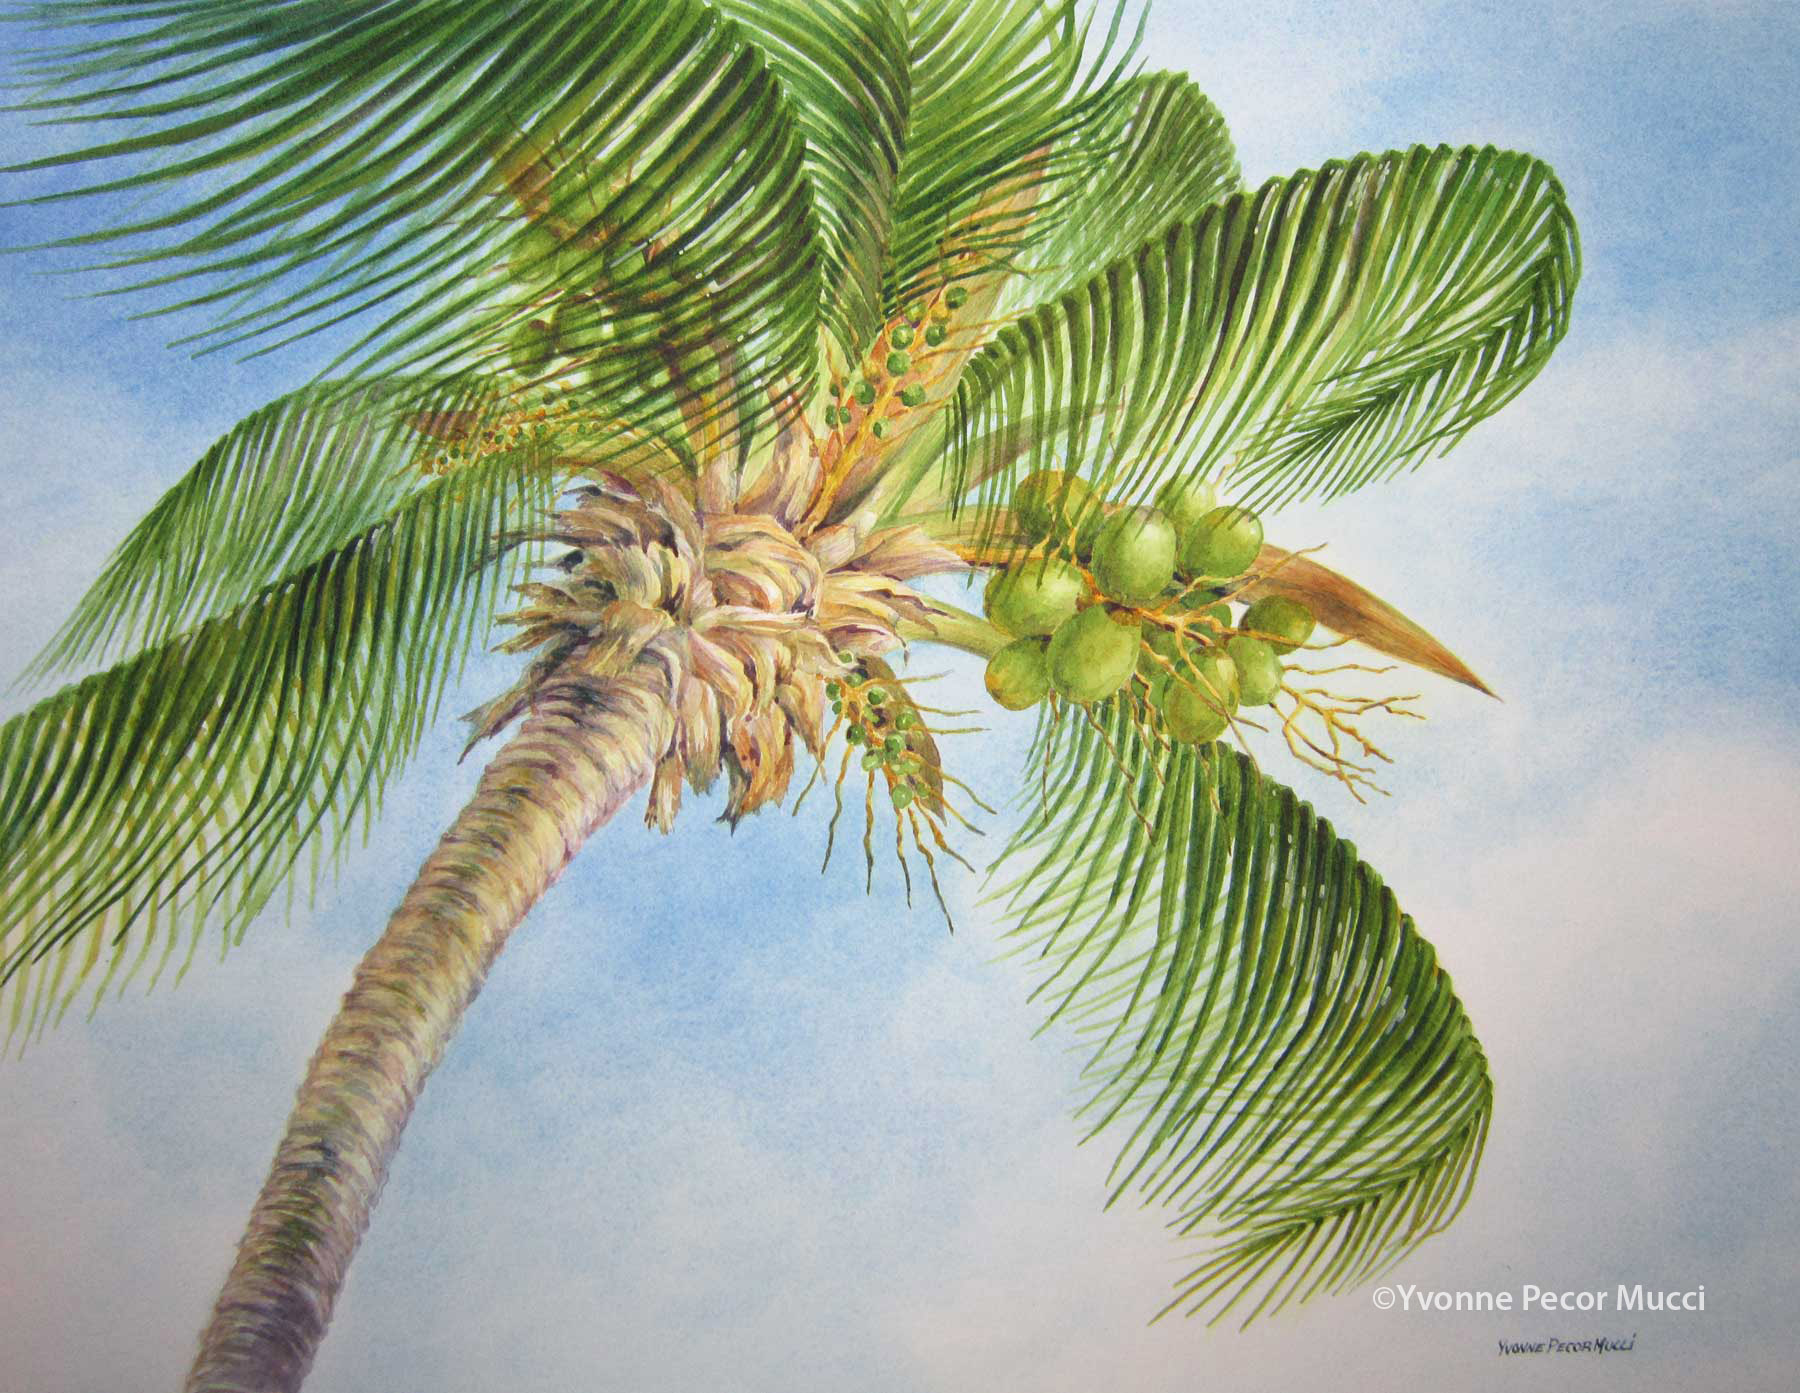 Painting yvonne pecor mucci for Painting palm trees